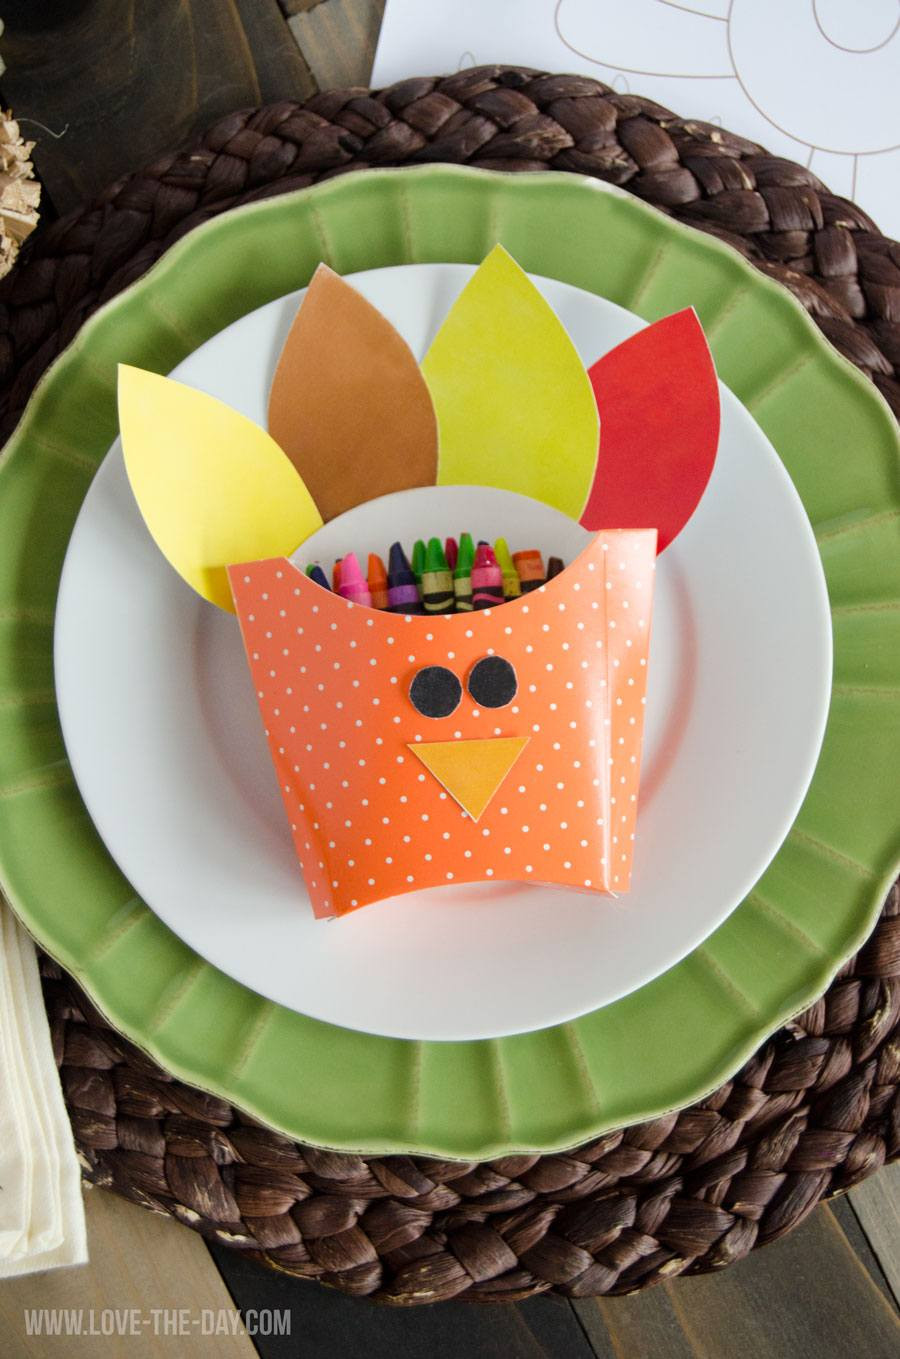 Thanksgiving Turkey Craft  15 DIY Turkey Craft Projects for Thanksgiving on Love the Day